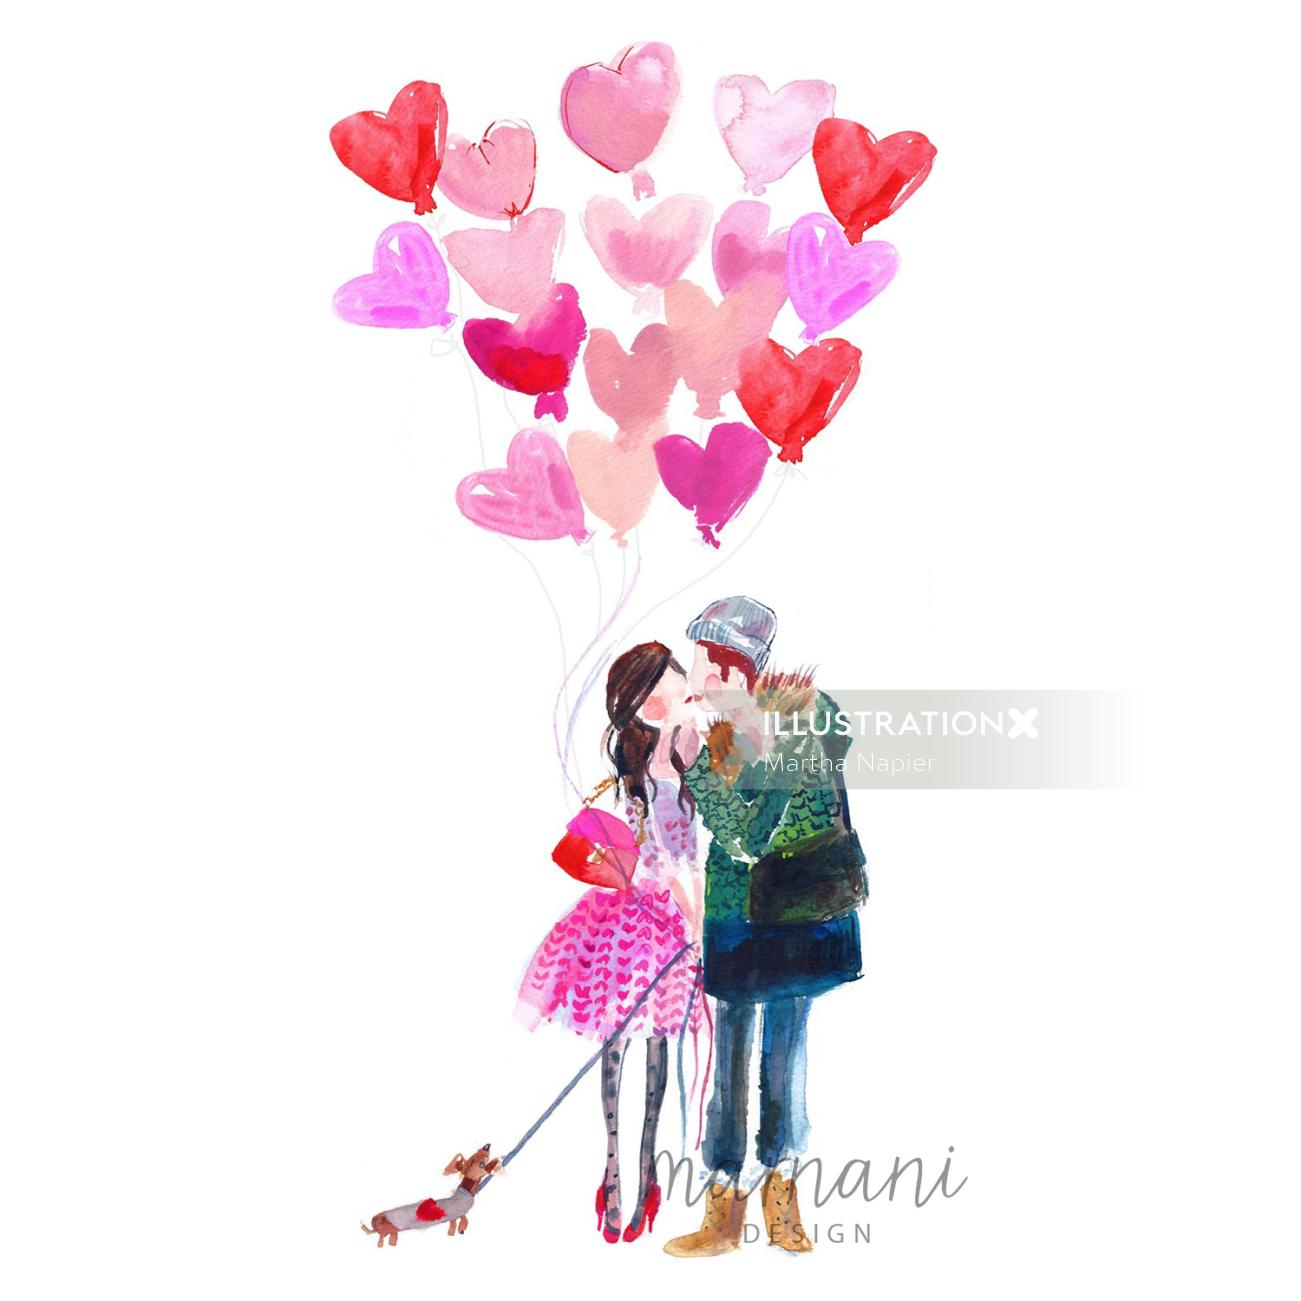 An illustration of couple expressing their love with heart shape balloons